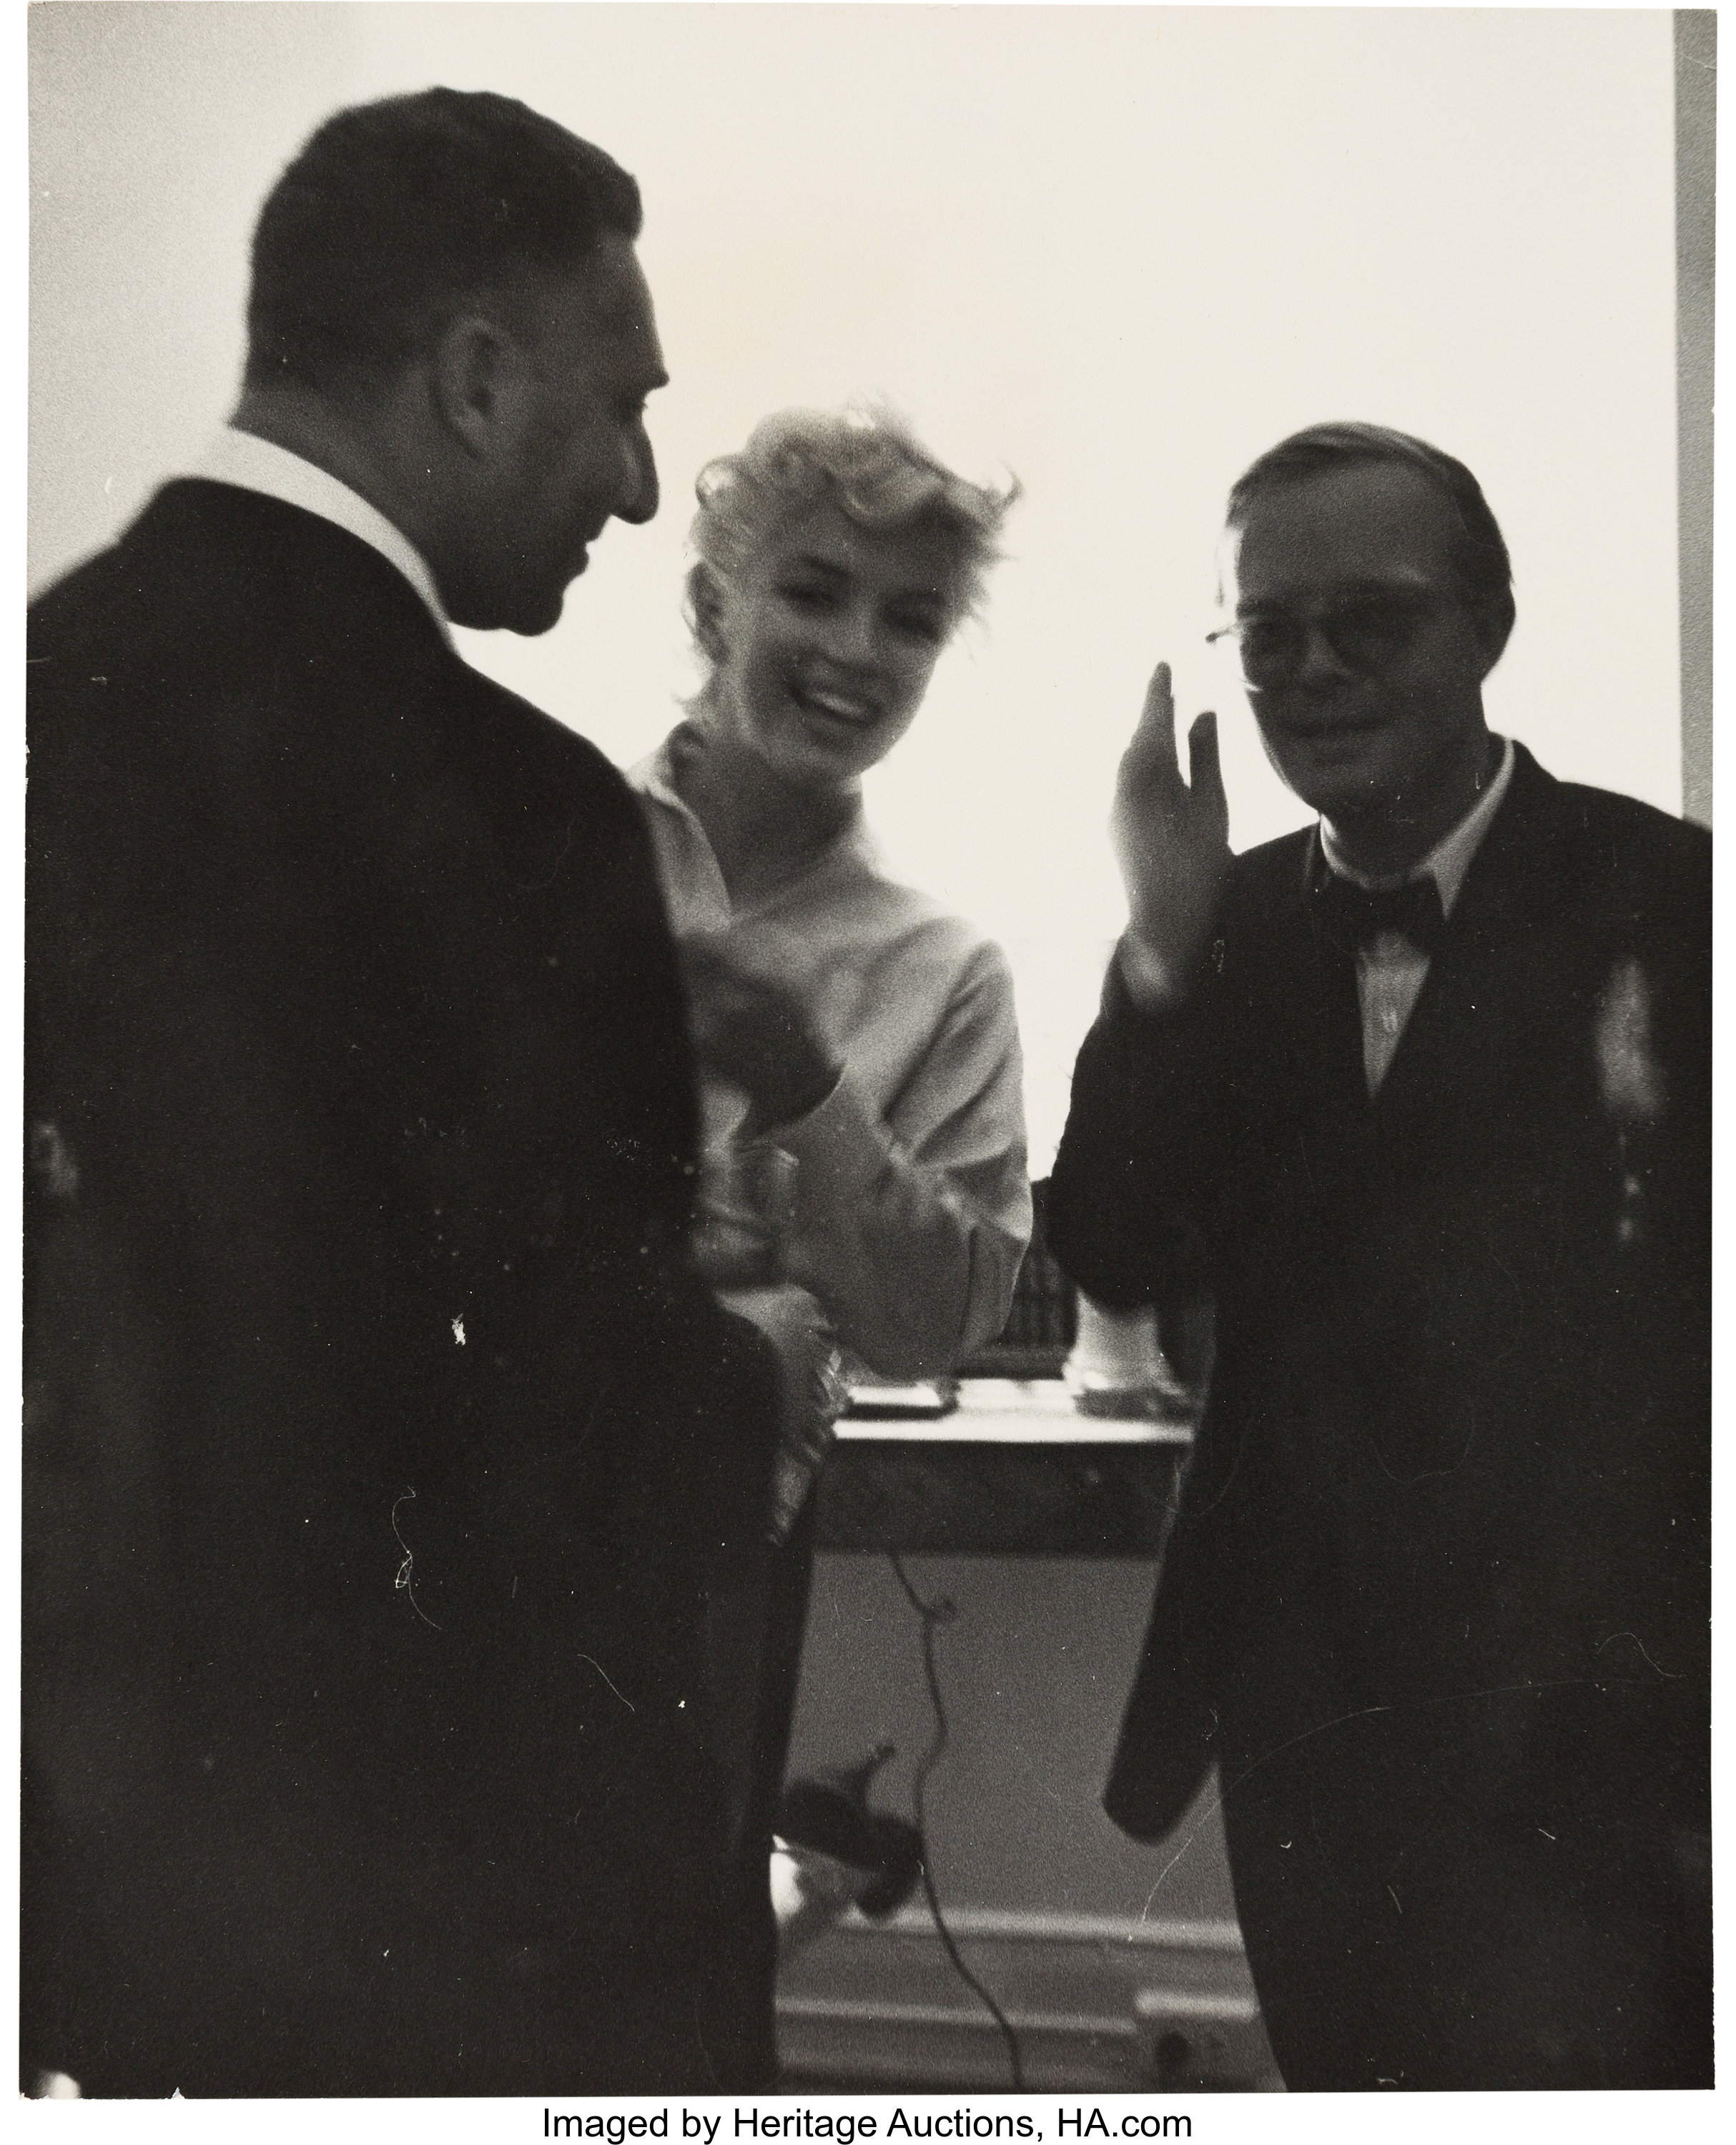 A marilyn monroe and truman capote rare black and white photograph